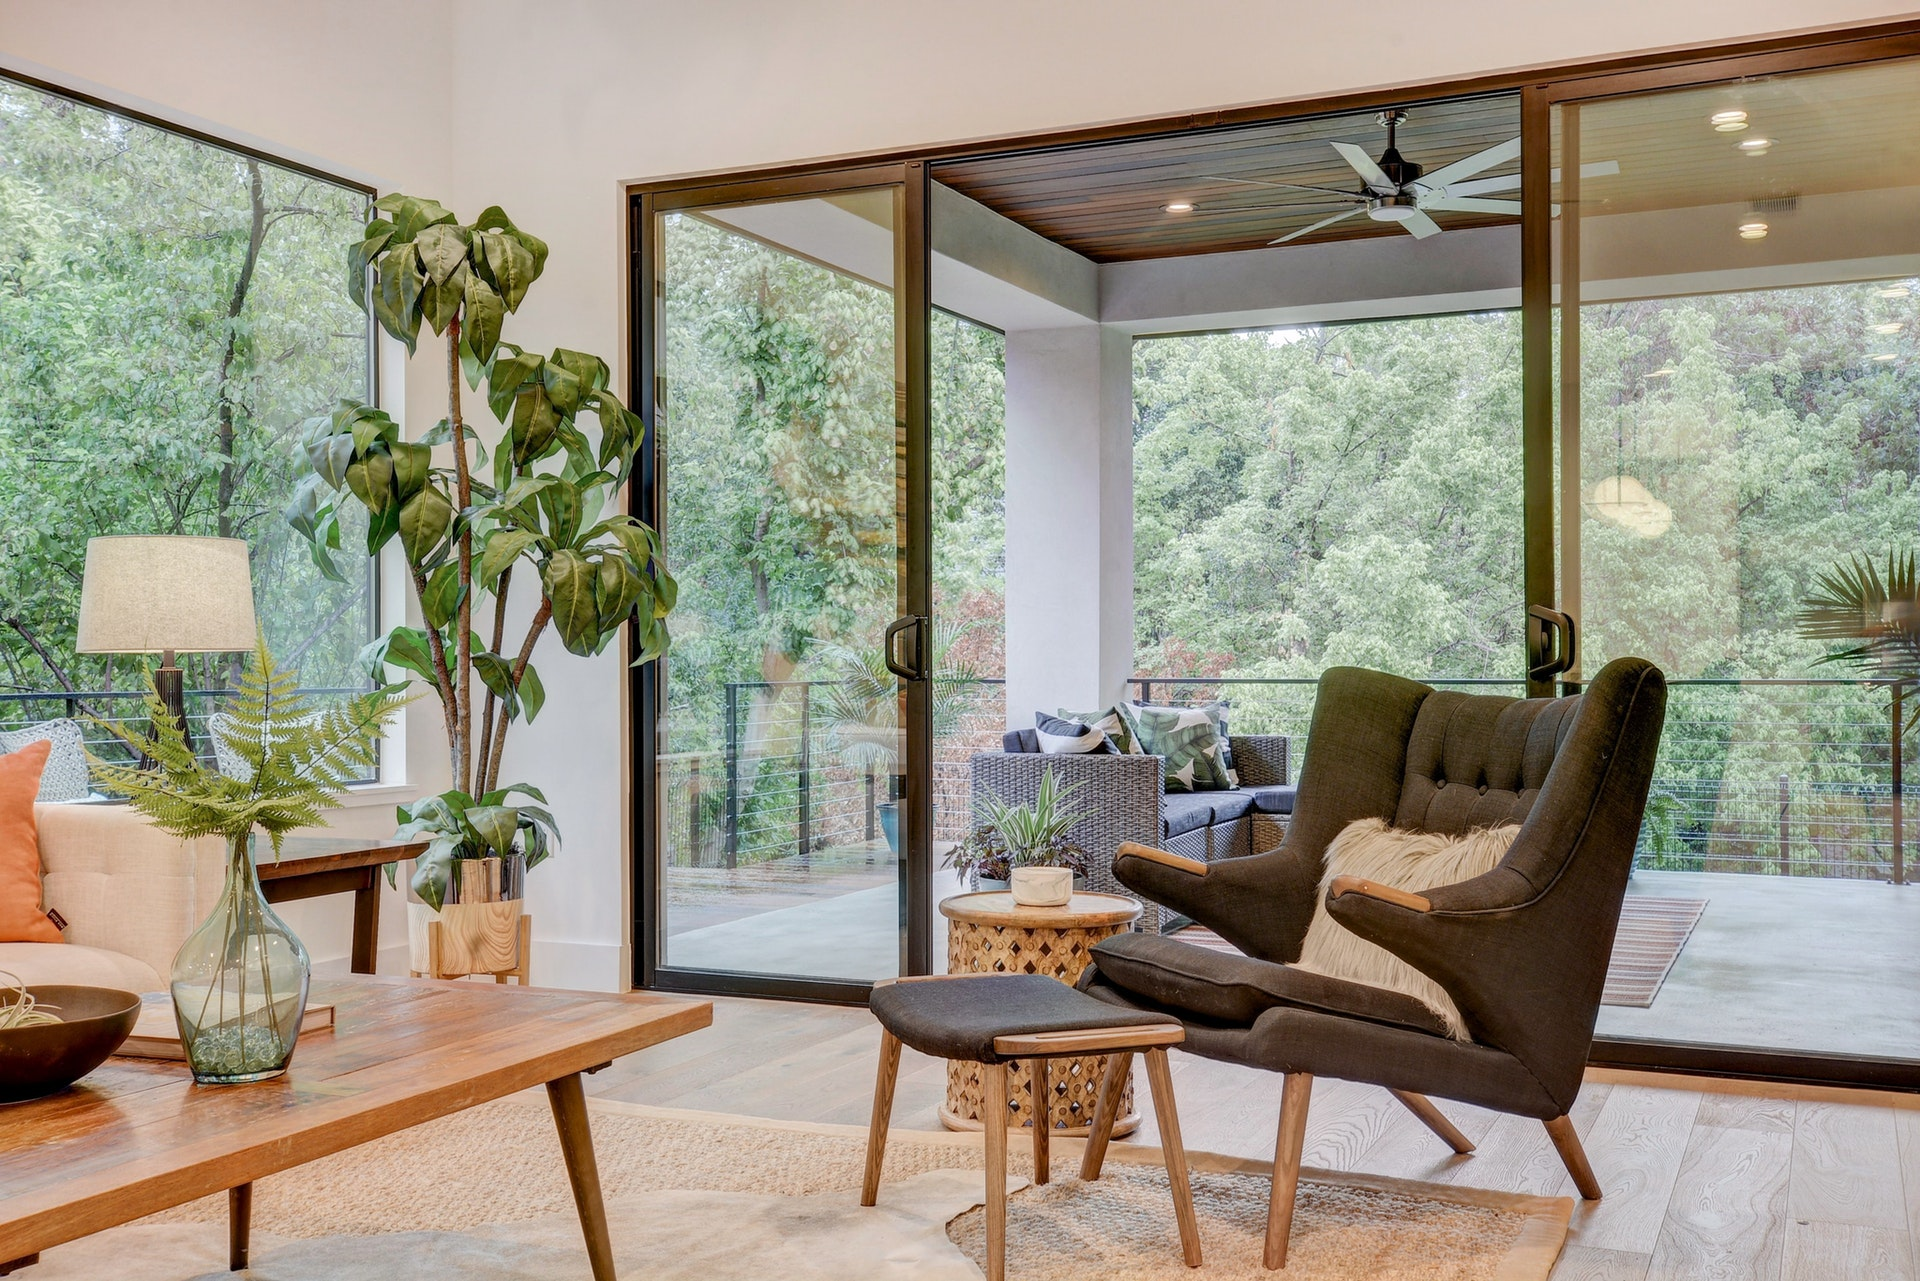 I love this shot of the plant and mid century Hans Wegner chair opening to the outdoor living space. You can see the Ipe ceiling. A creek view is just beyond making this this perfect urban oasis.